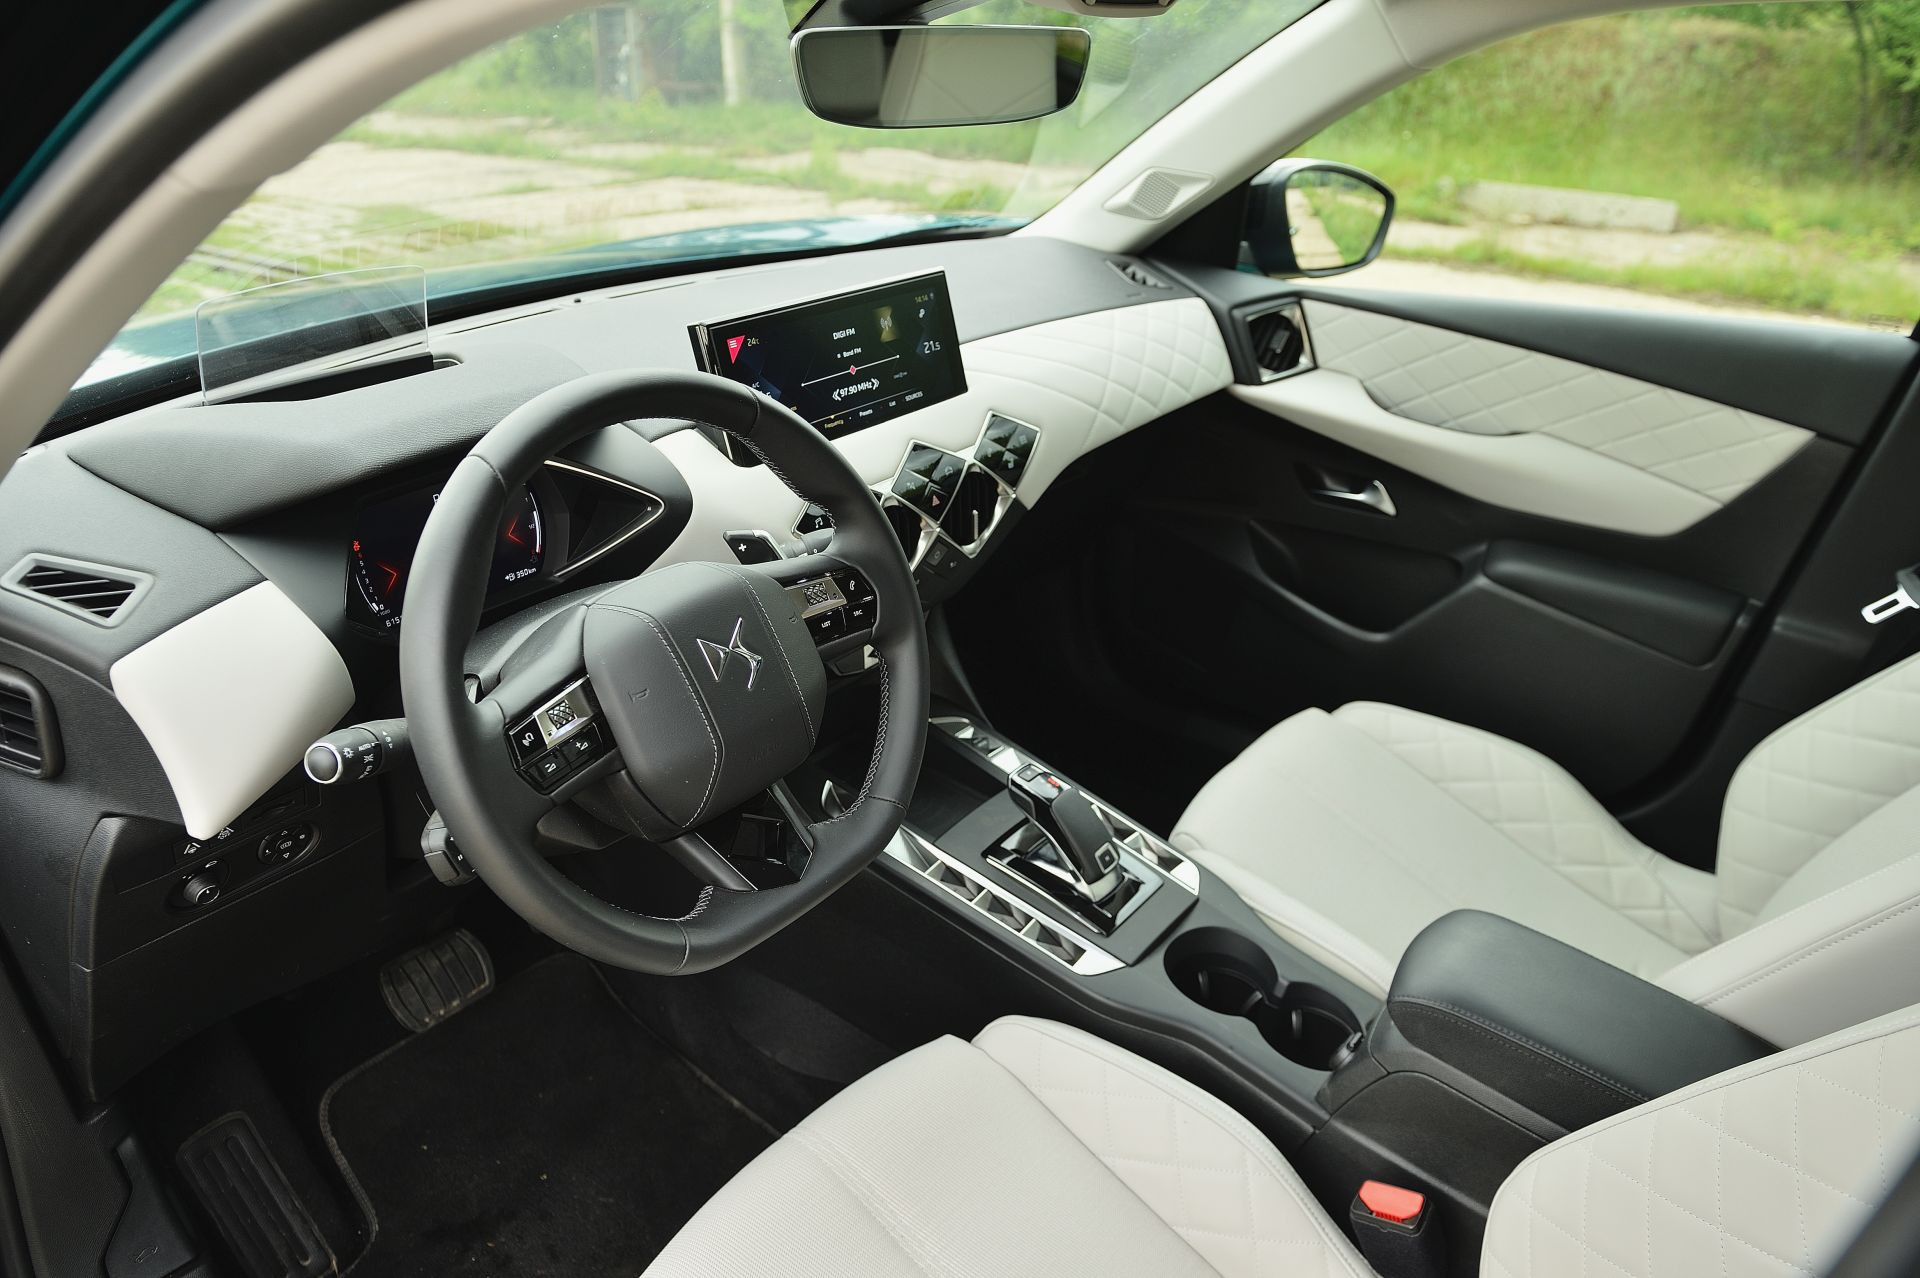 DS3 Crossback 1.2 Turbo interior